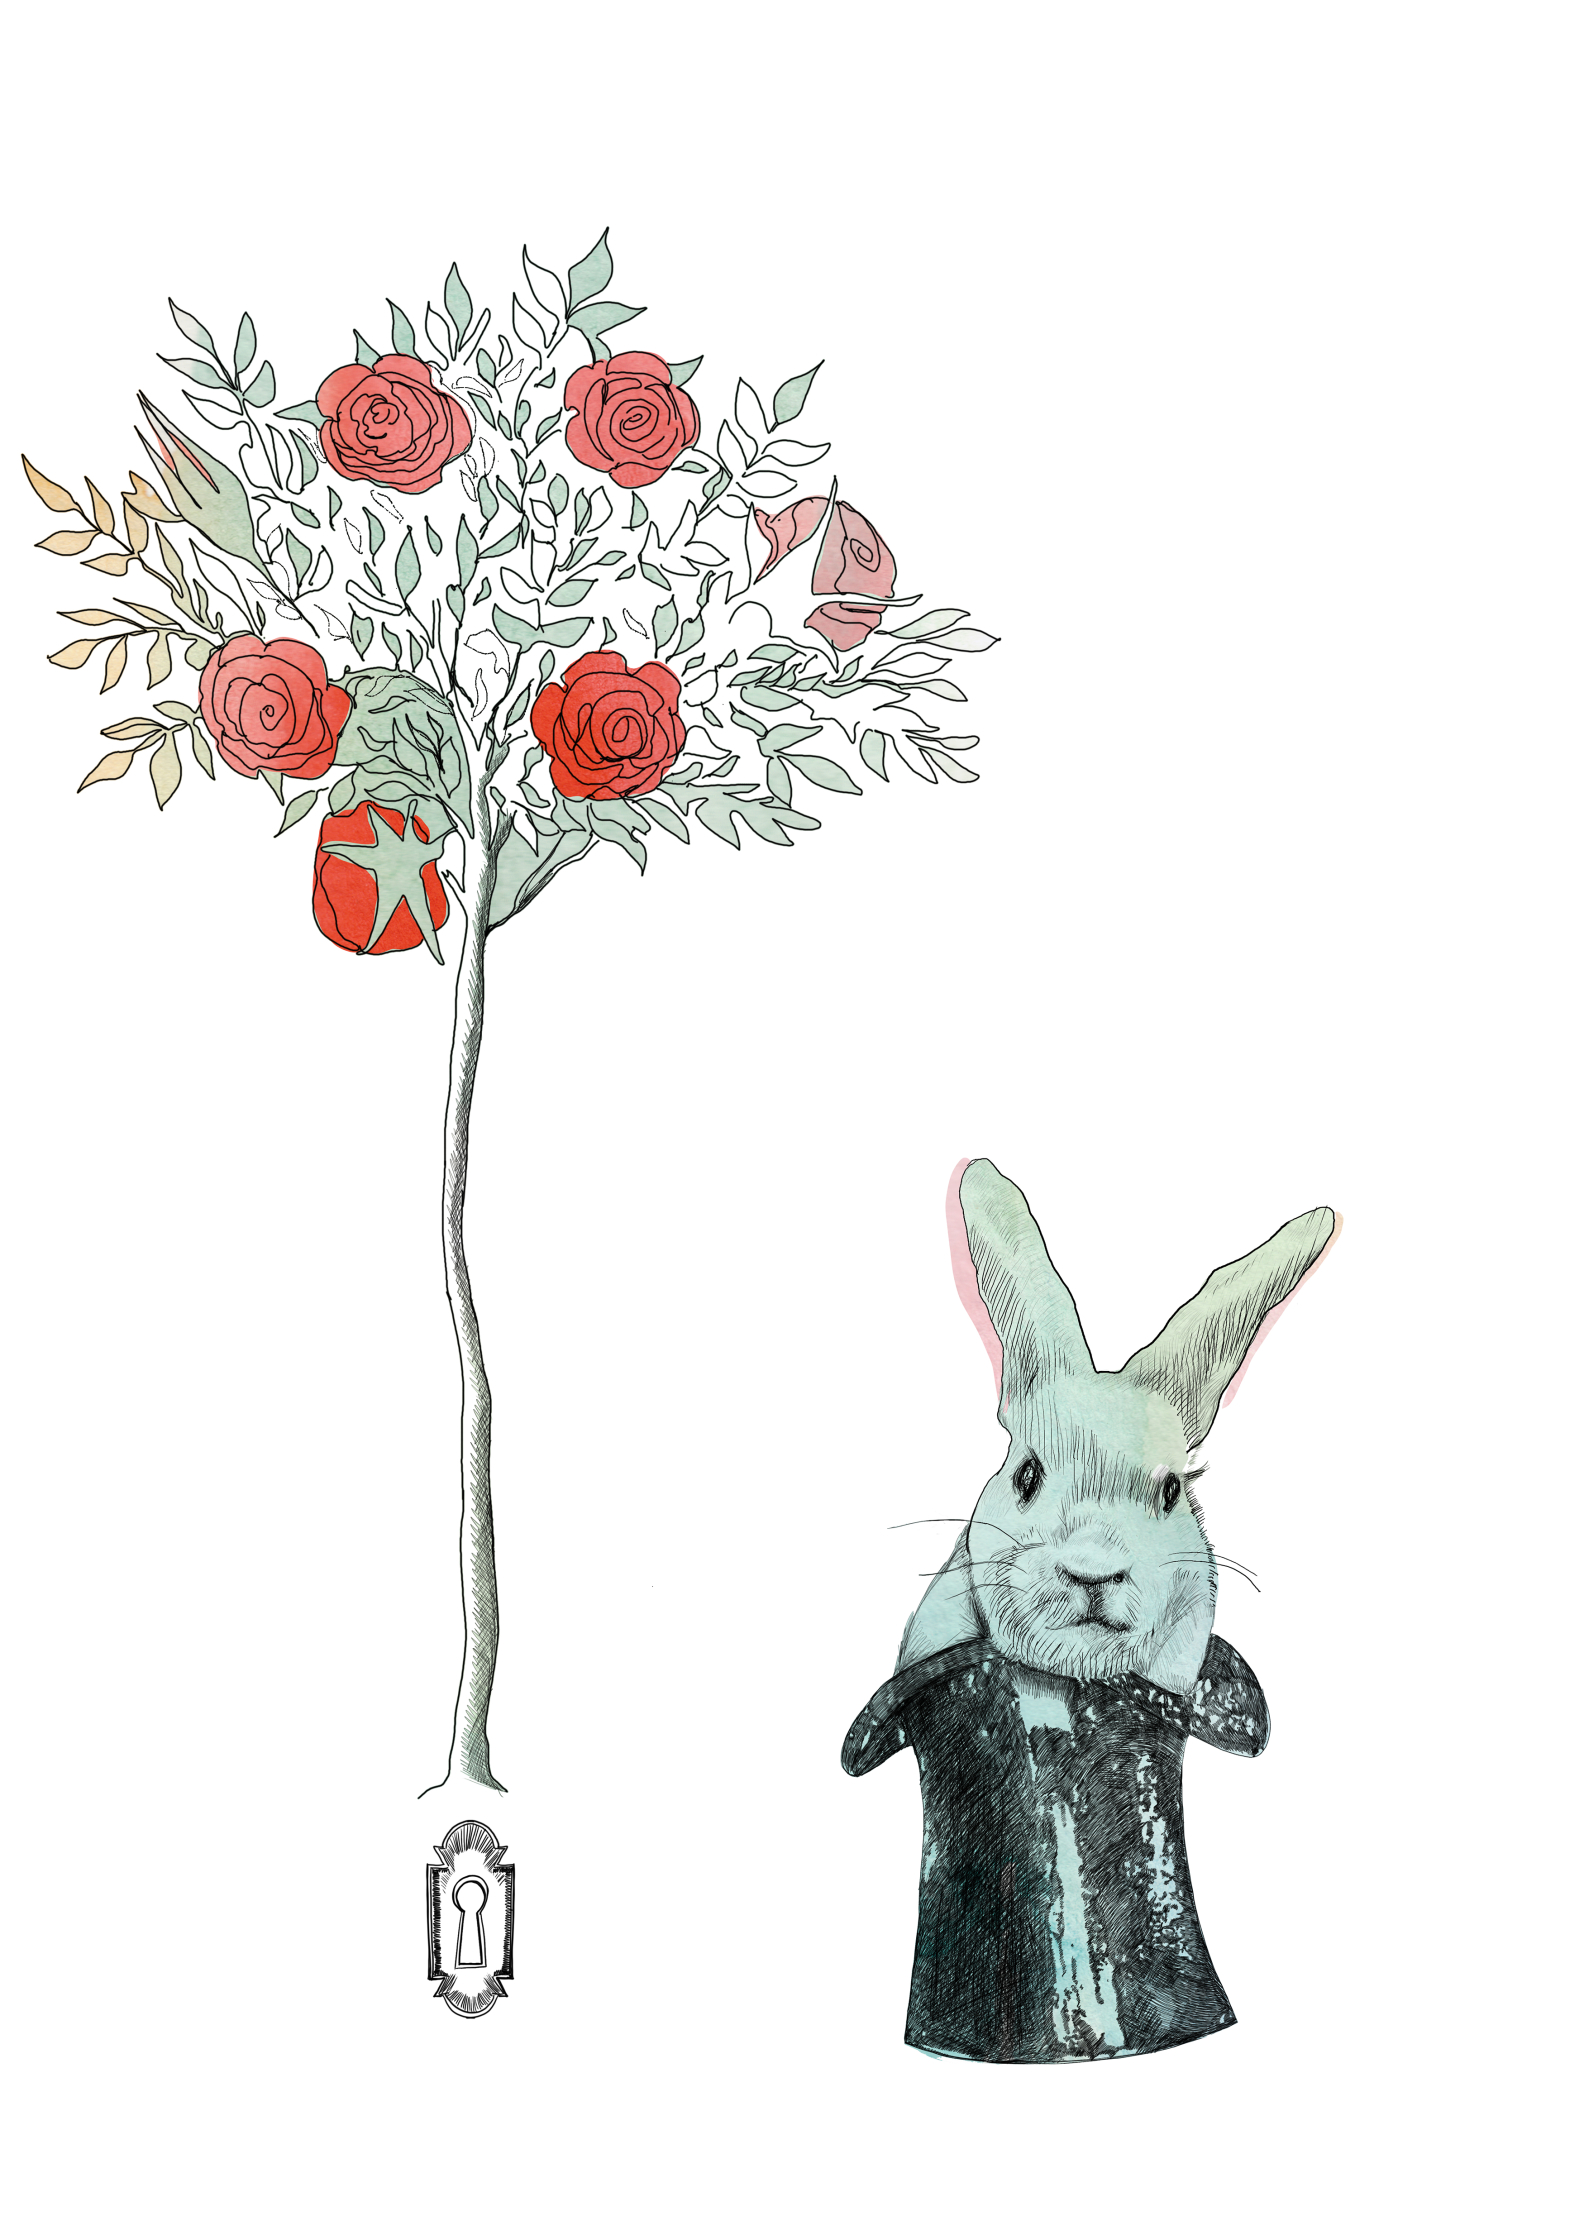 10_alice-easter-bunny-in-hat-rosetree-keyhole.jpg